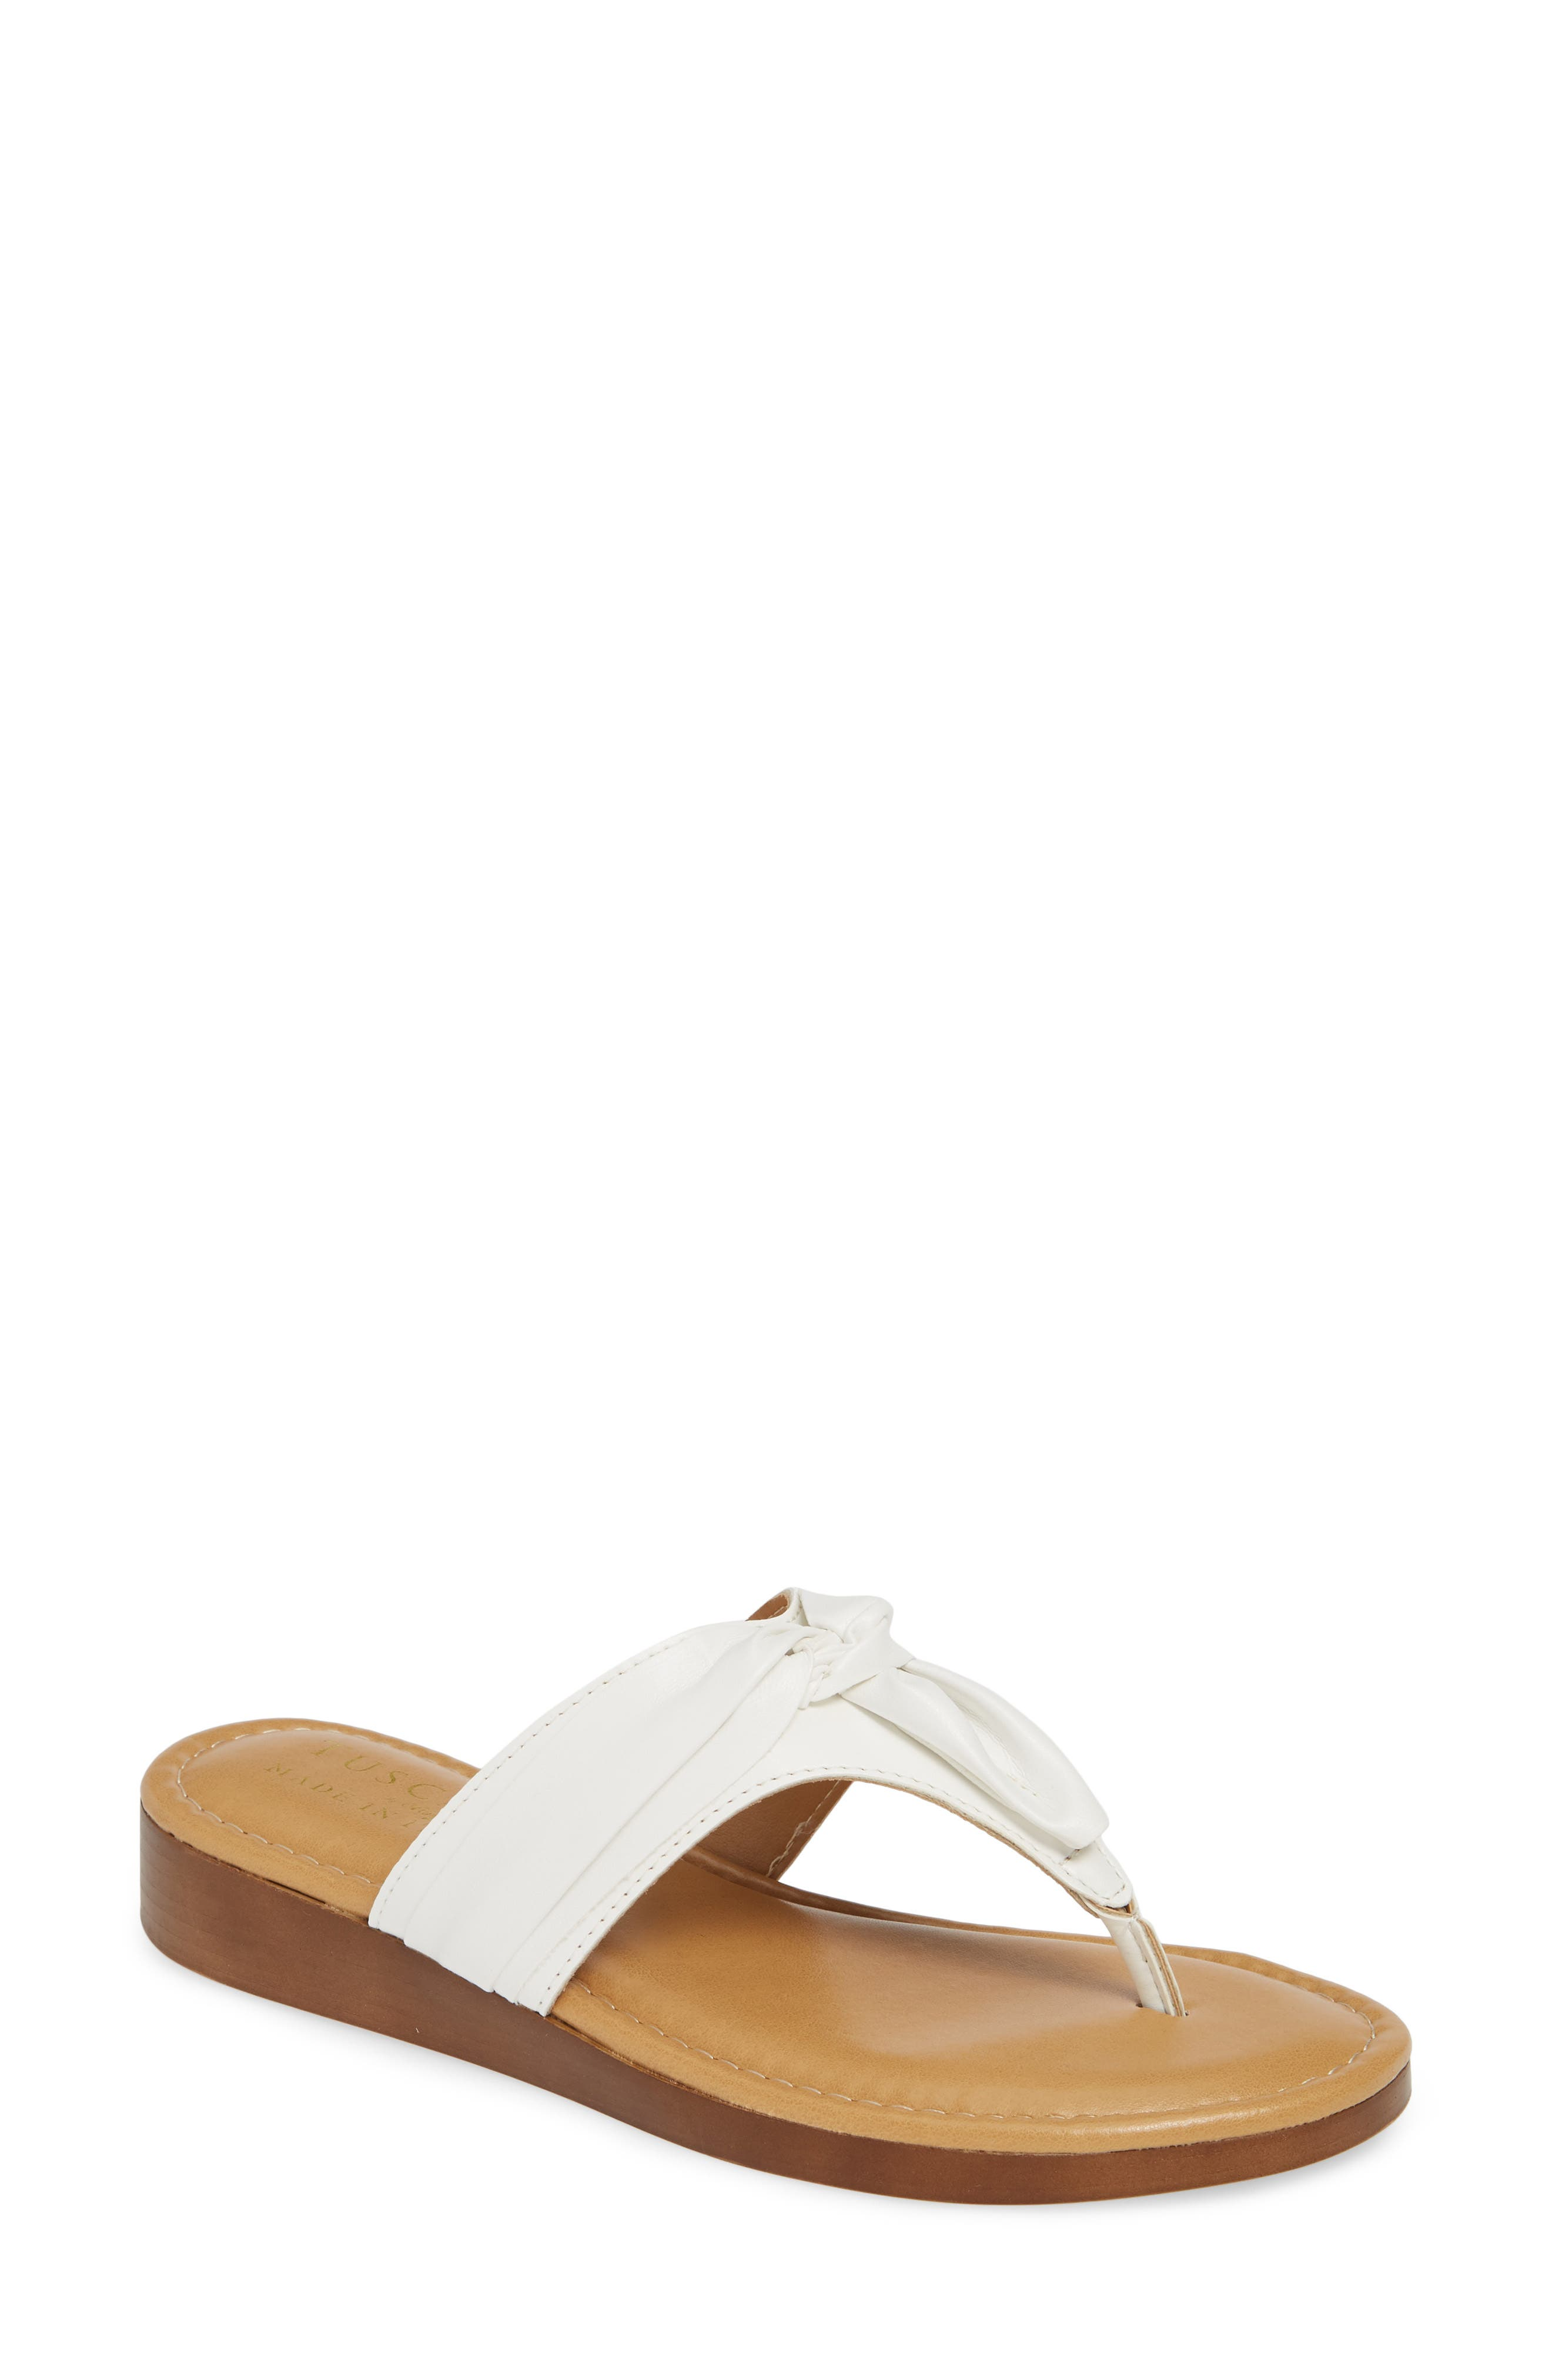 Tuscany By Easy Street Maren Flip Flop, White